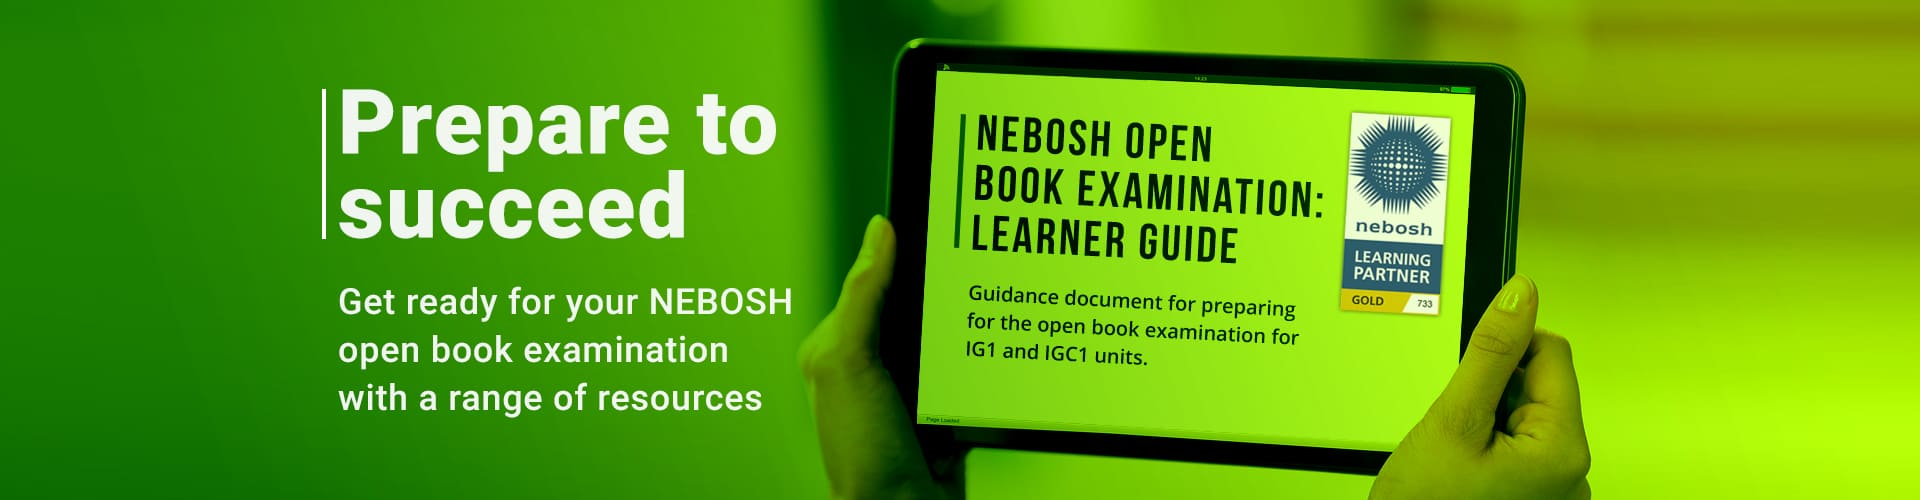 NEBOSH_Prepare-to-succeed_Banner_2020_coin_